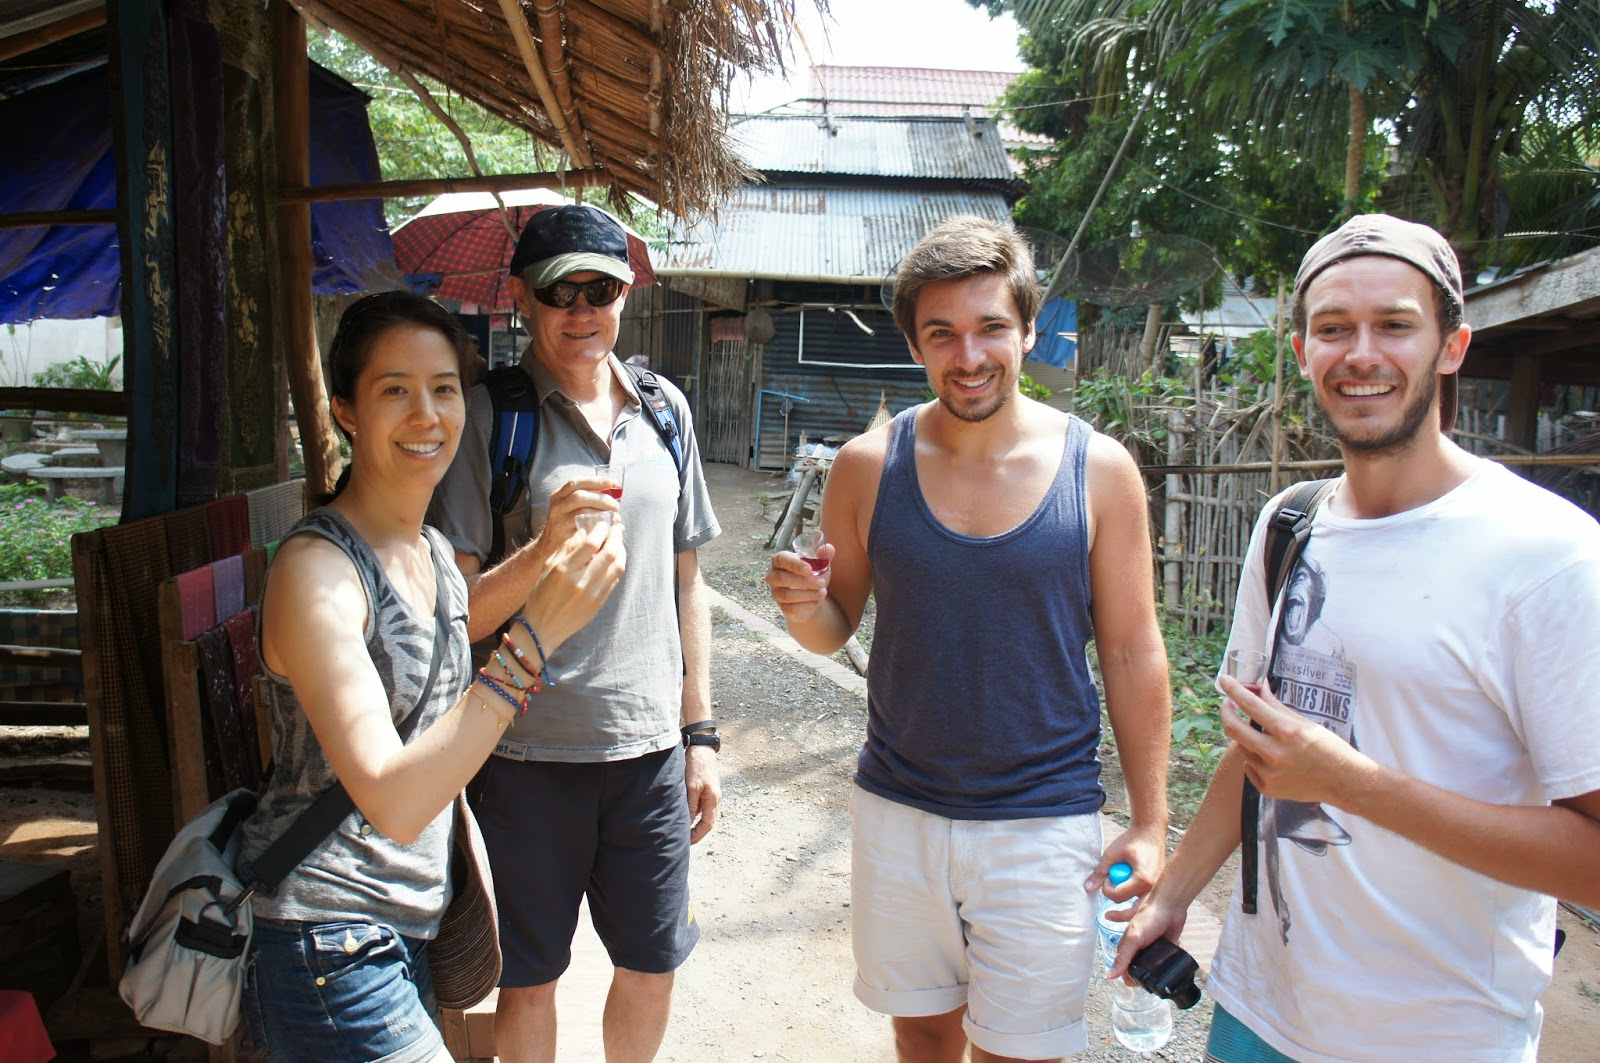 Luang Prabang - Bottoms up! Sampling some wine with our excursion mates Dominic and Max